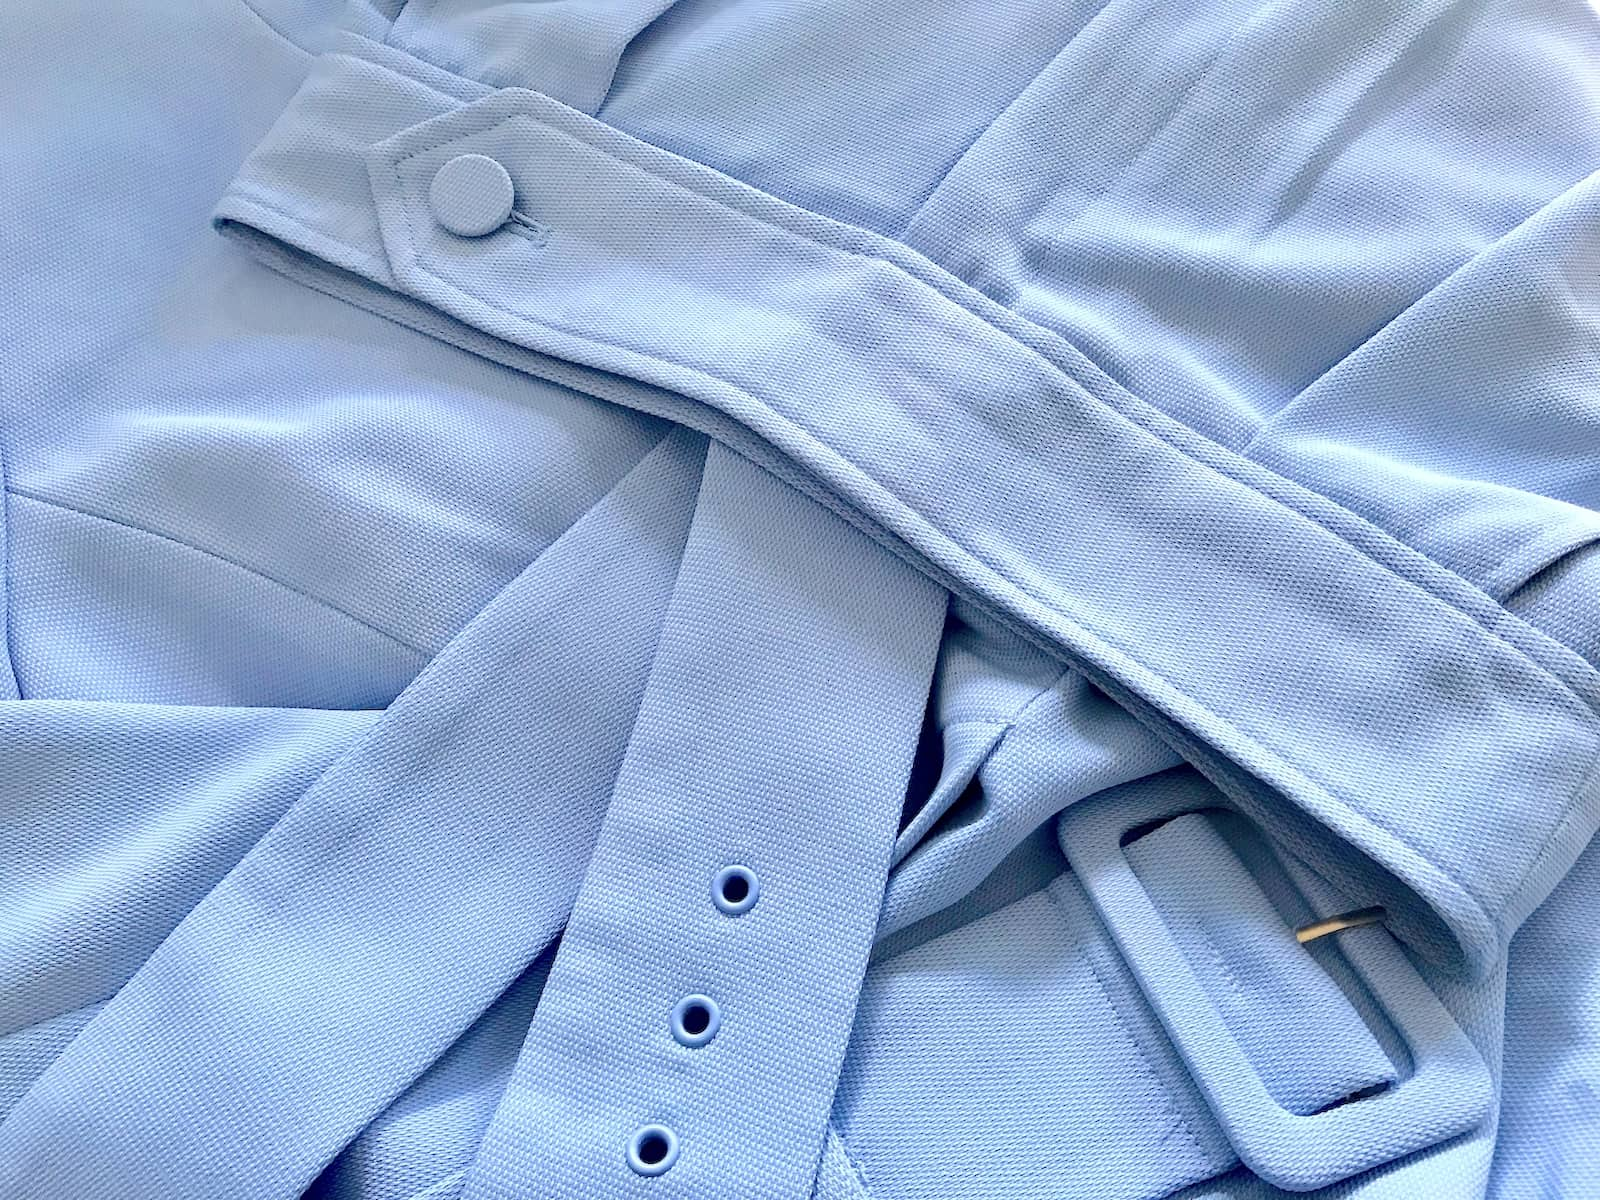 A close-up of the fabric of a pair of pants and blazer, in a cornflower blue colour. The fabric is slightly textured.